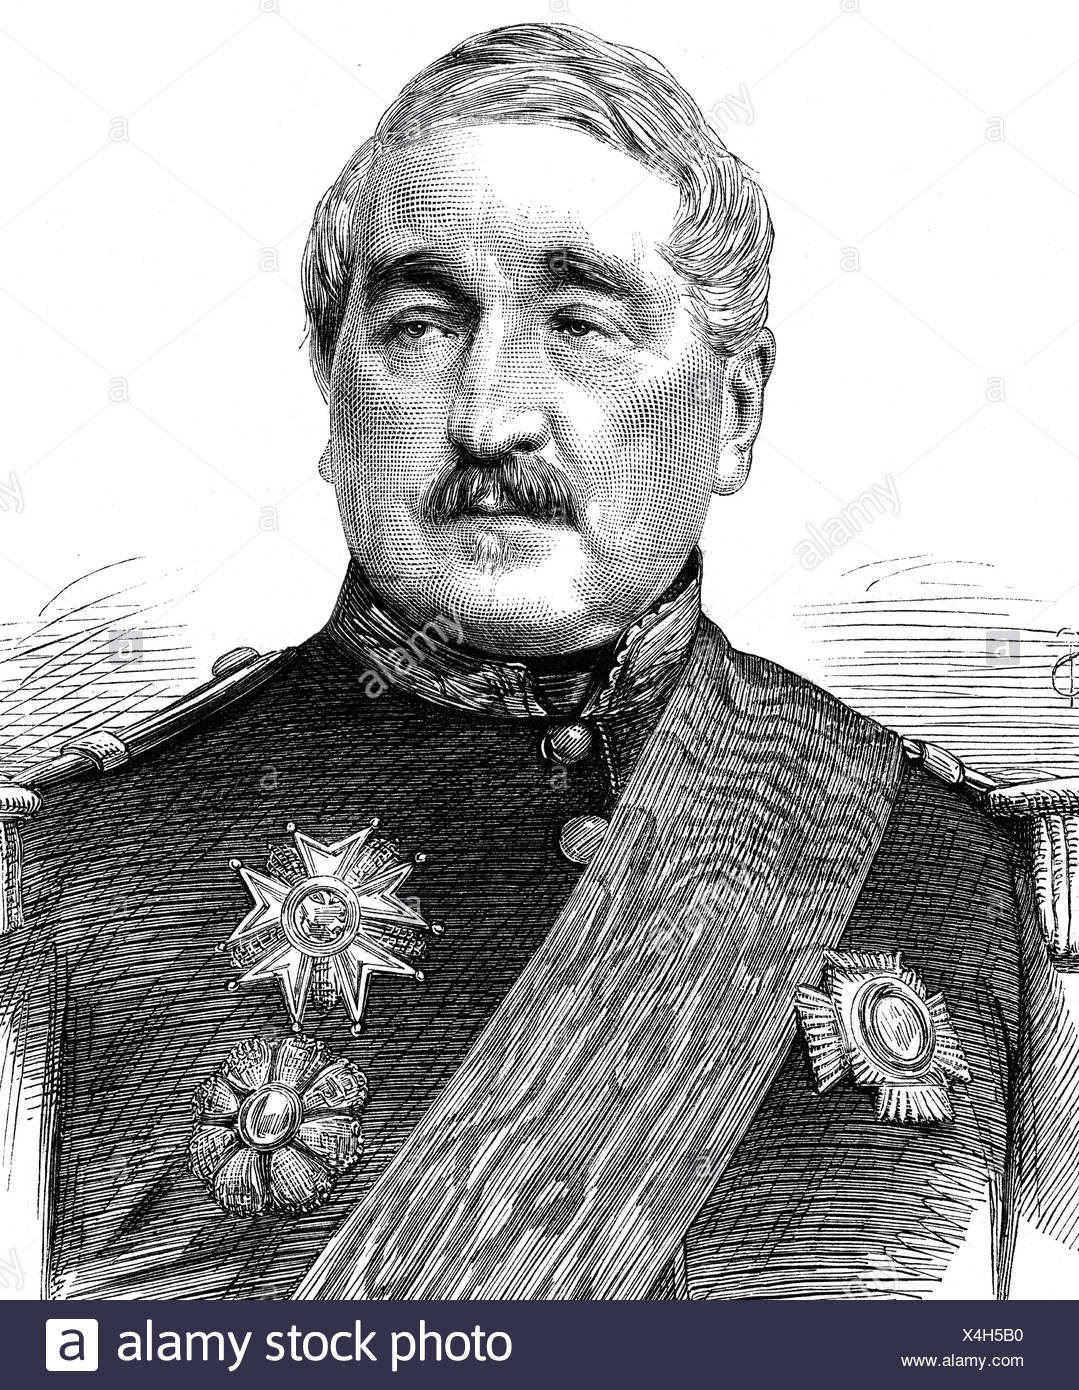 Cousin-Montauban, Charles, 24.6.1796 - 8.1.1878, French general and politician, Prime Minister 9.8.1870 - 4.9.1870, portrait, wood engraving, 1870, , Additional-Rights-Clearances-NA - Stock Image